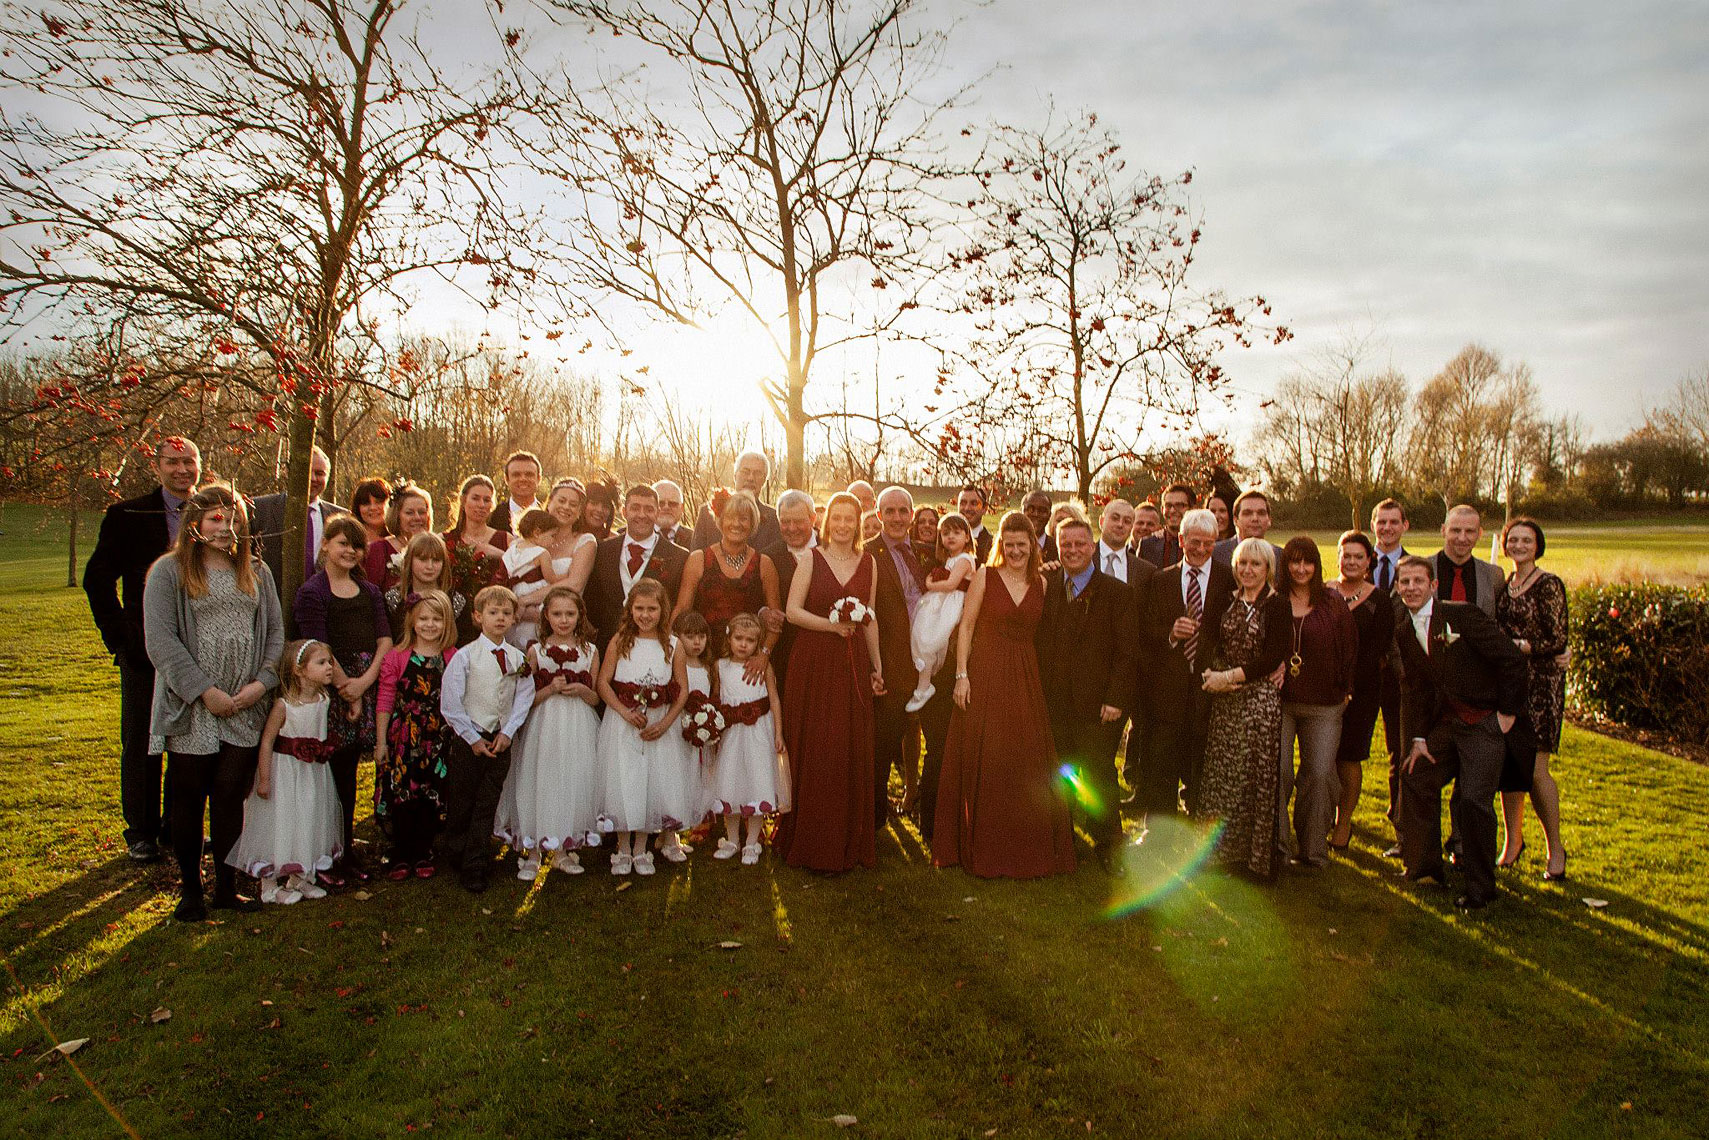 Sun setting behind wedding party taking place in green fields with trees